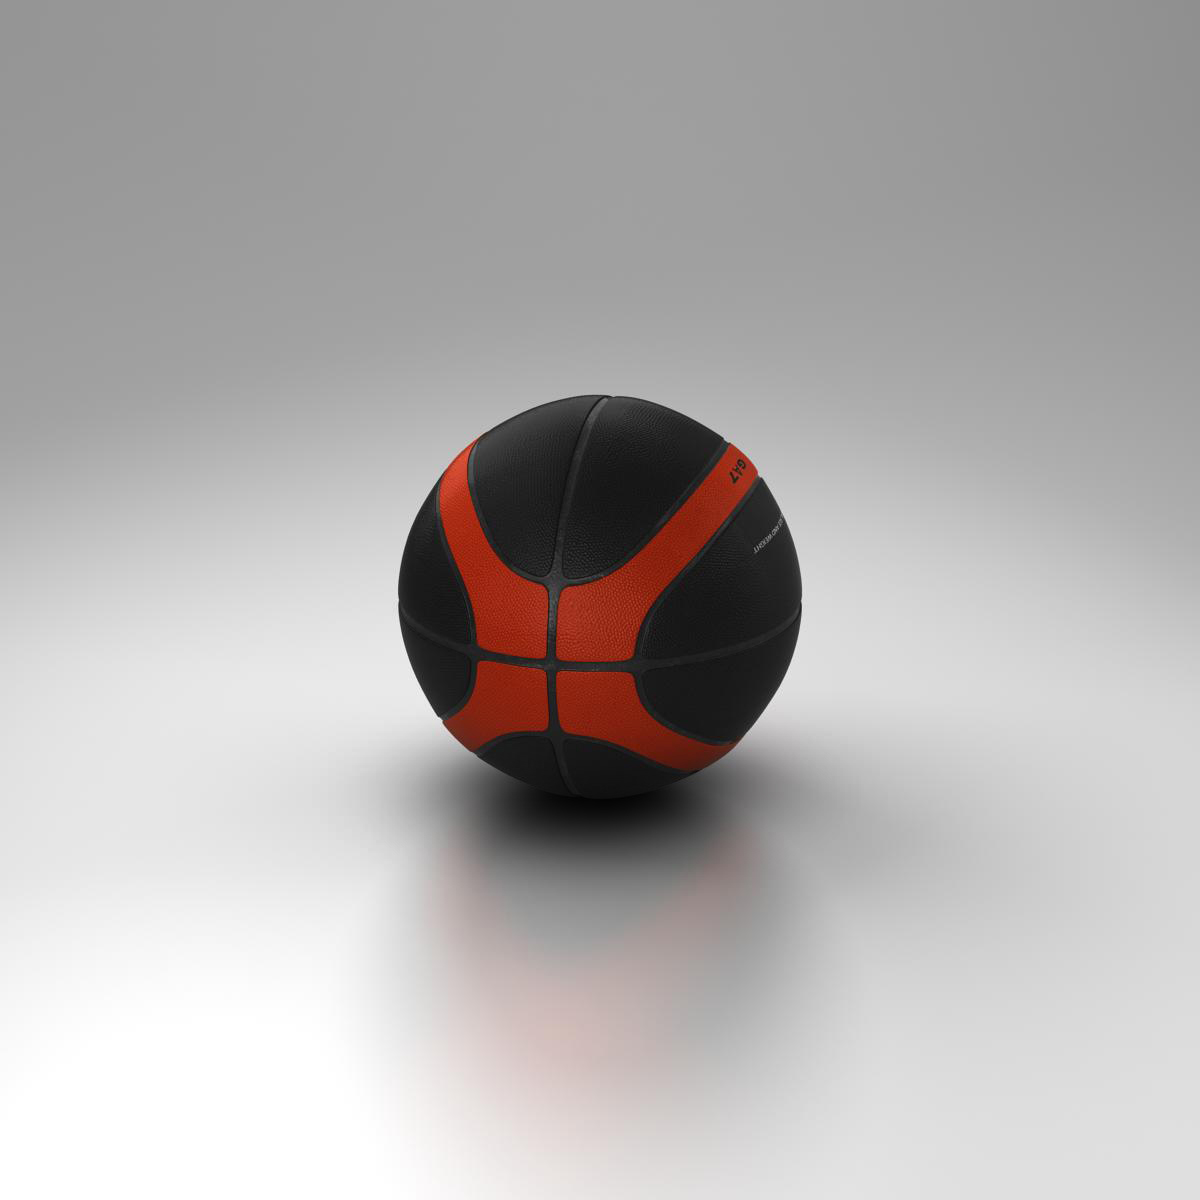 basketball ball eba black 3d model 3ds max fbx c4d ma mb obj 165308